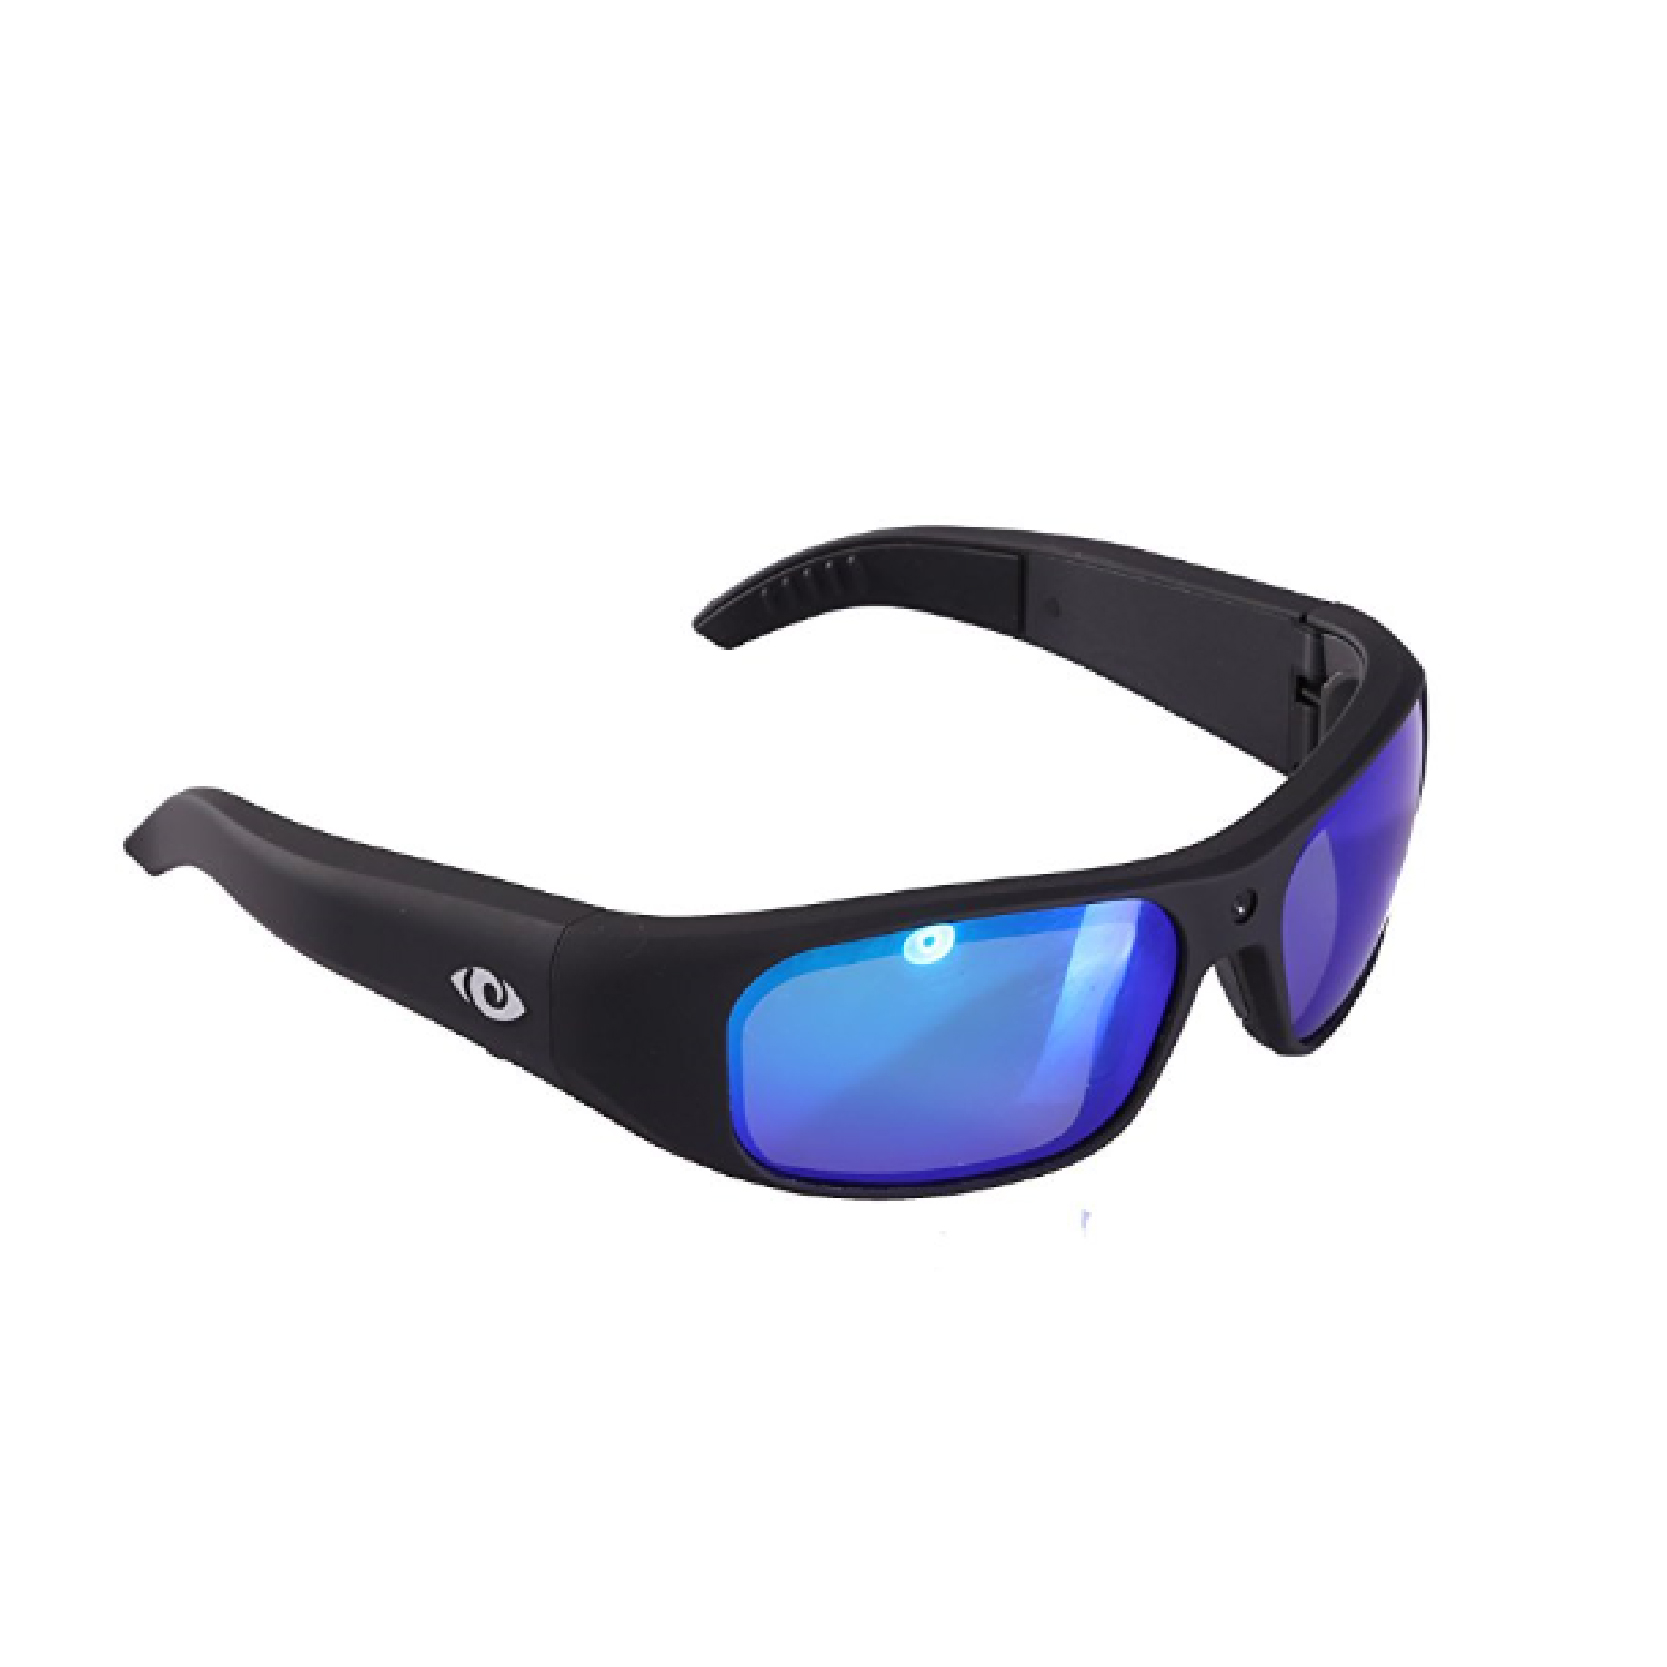 Cyclops Gear Video Sunglasses